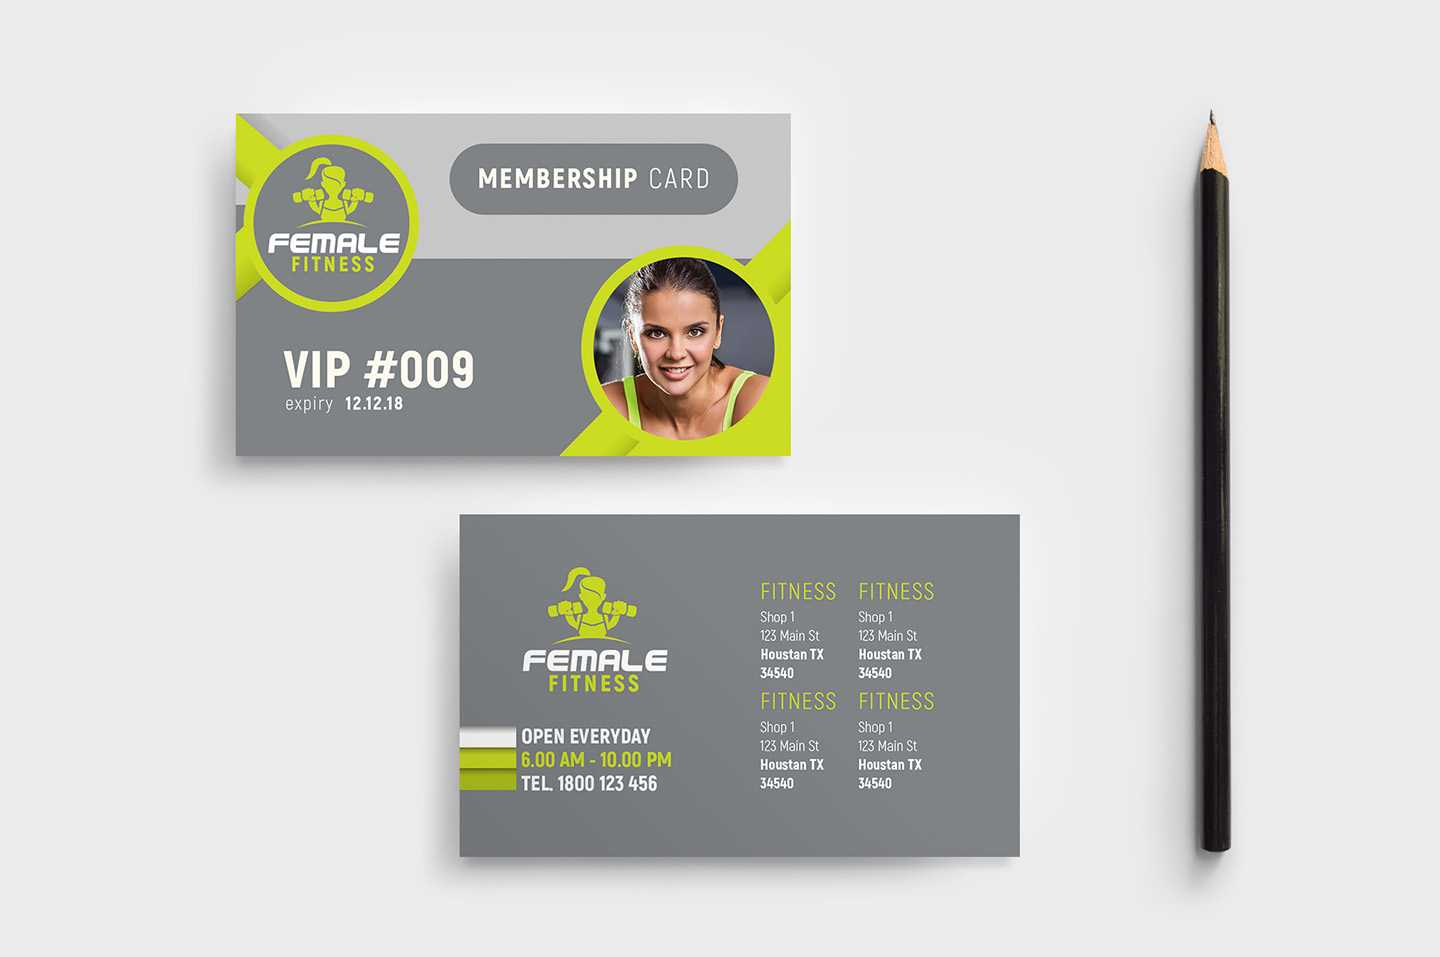 Female Fitness Membership Card Template In Psd, Ai Inside Gym Membership Card Template